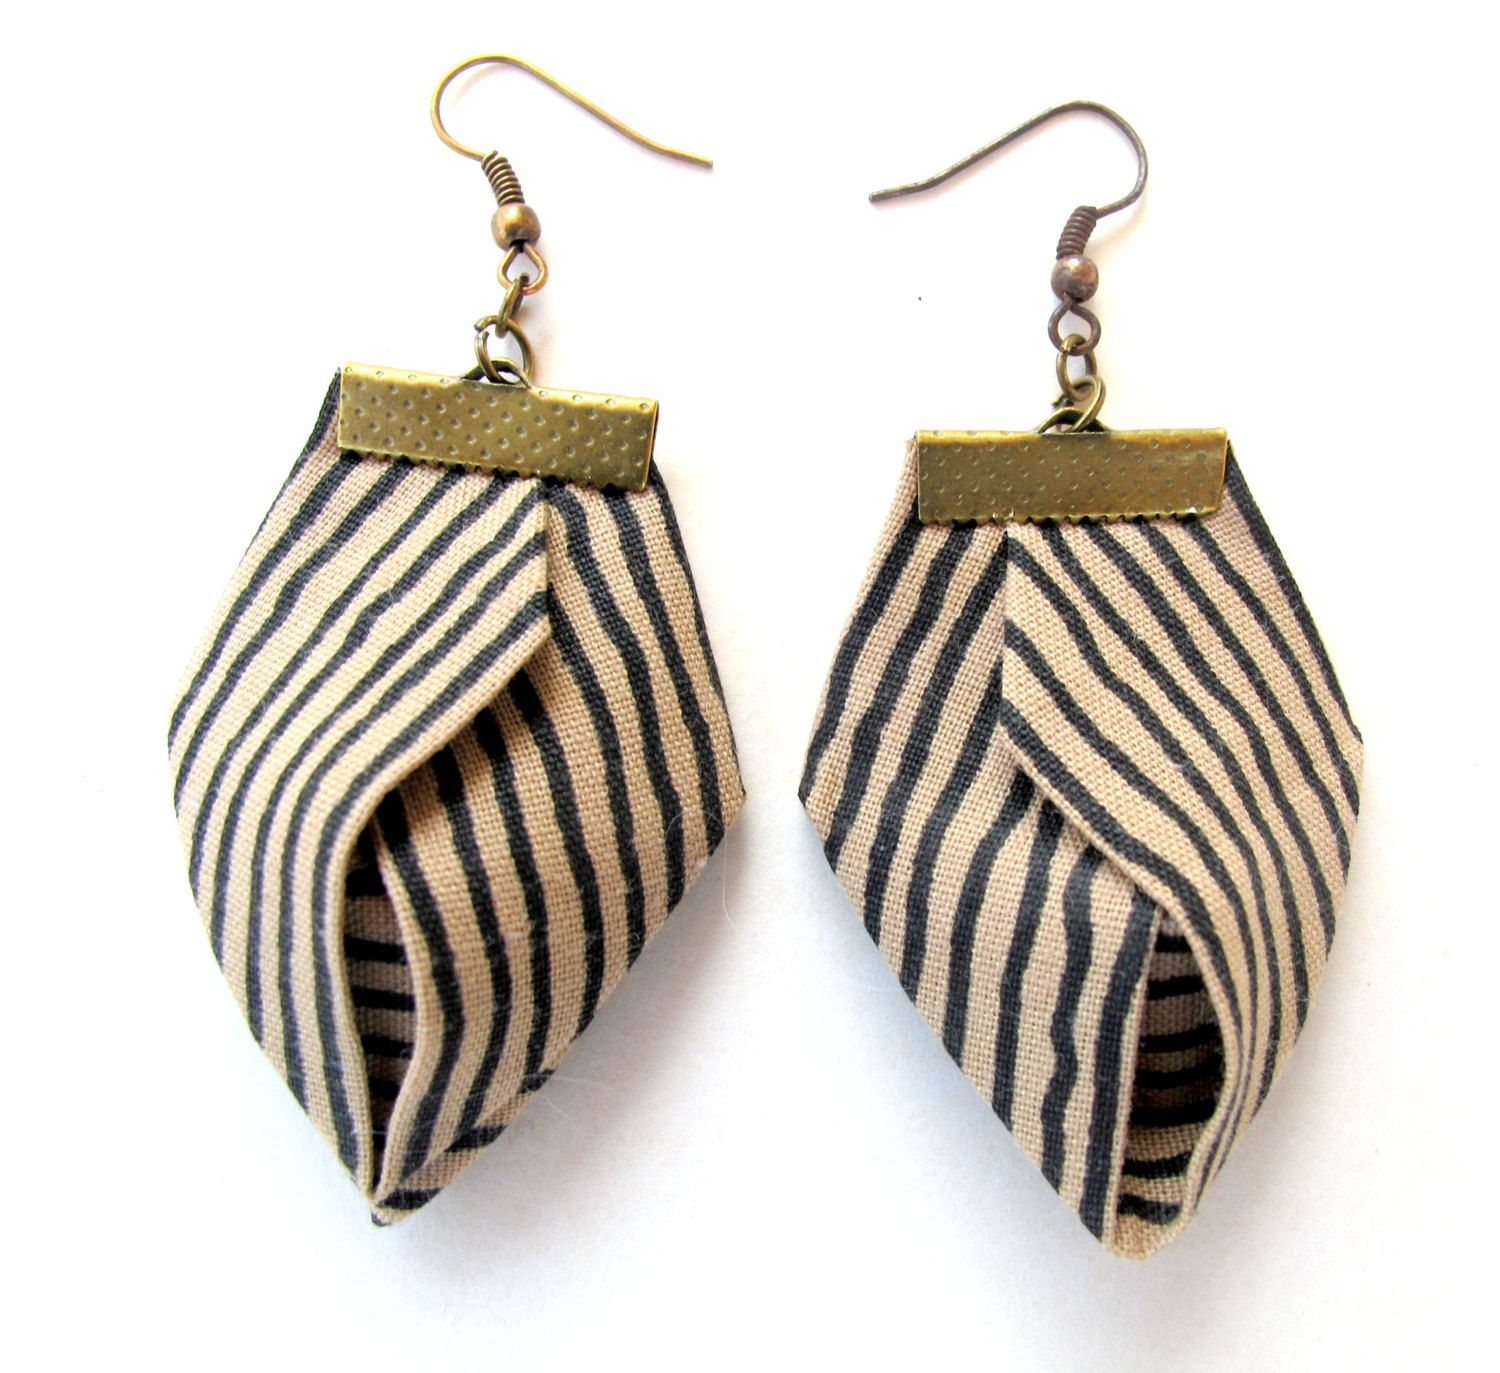 Zen striped fiber earrings, natural fiber earrings, origami earrings, linen fiber earrings, unusual fabric dangles by Gilgulim on Etsy https://www.etsy.com/listing/207860575/zen-striped-fiber-earrings-natural-fiber